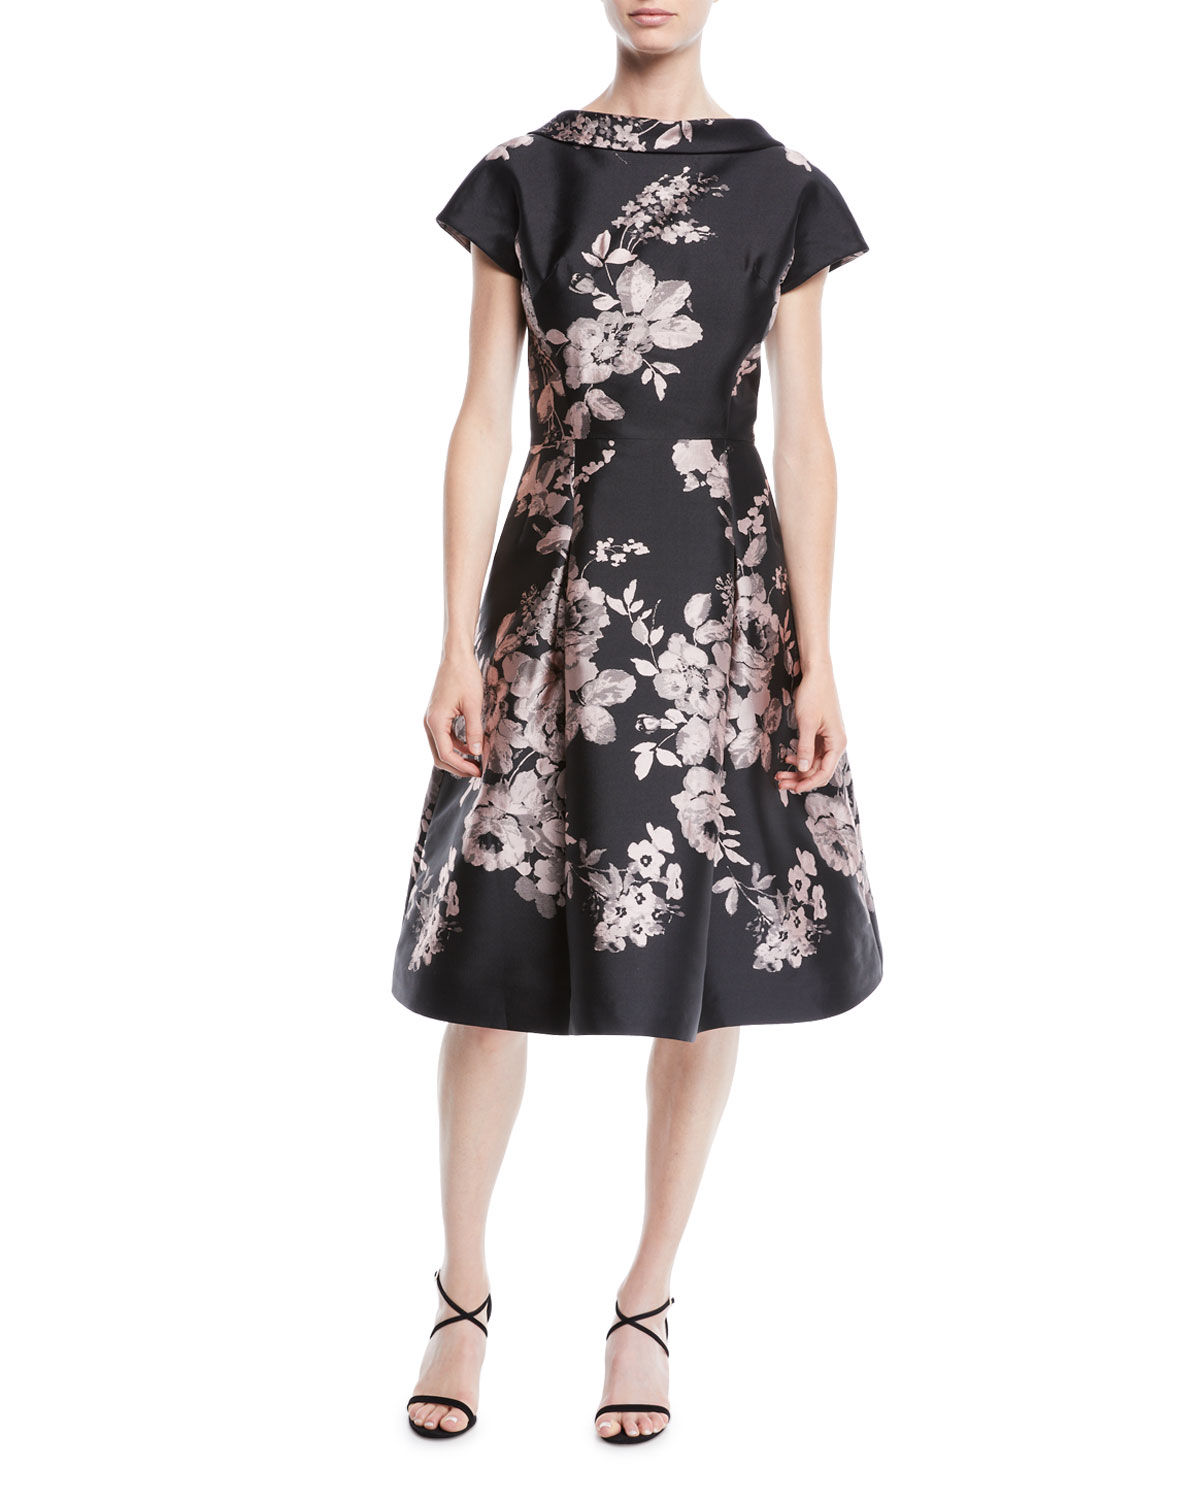 High-Neck Cap-Sleeve Fit-and-Flare Floral-Jacquard Cocktail Dress